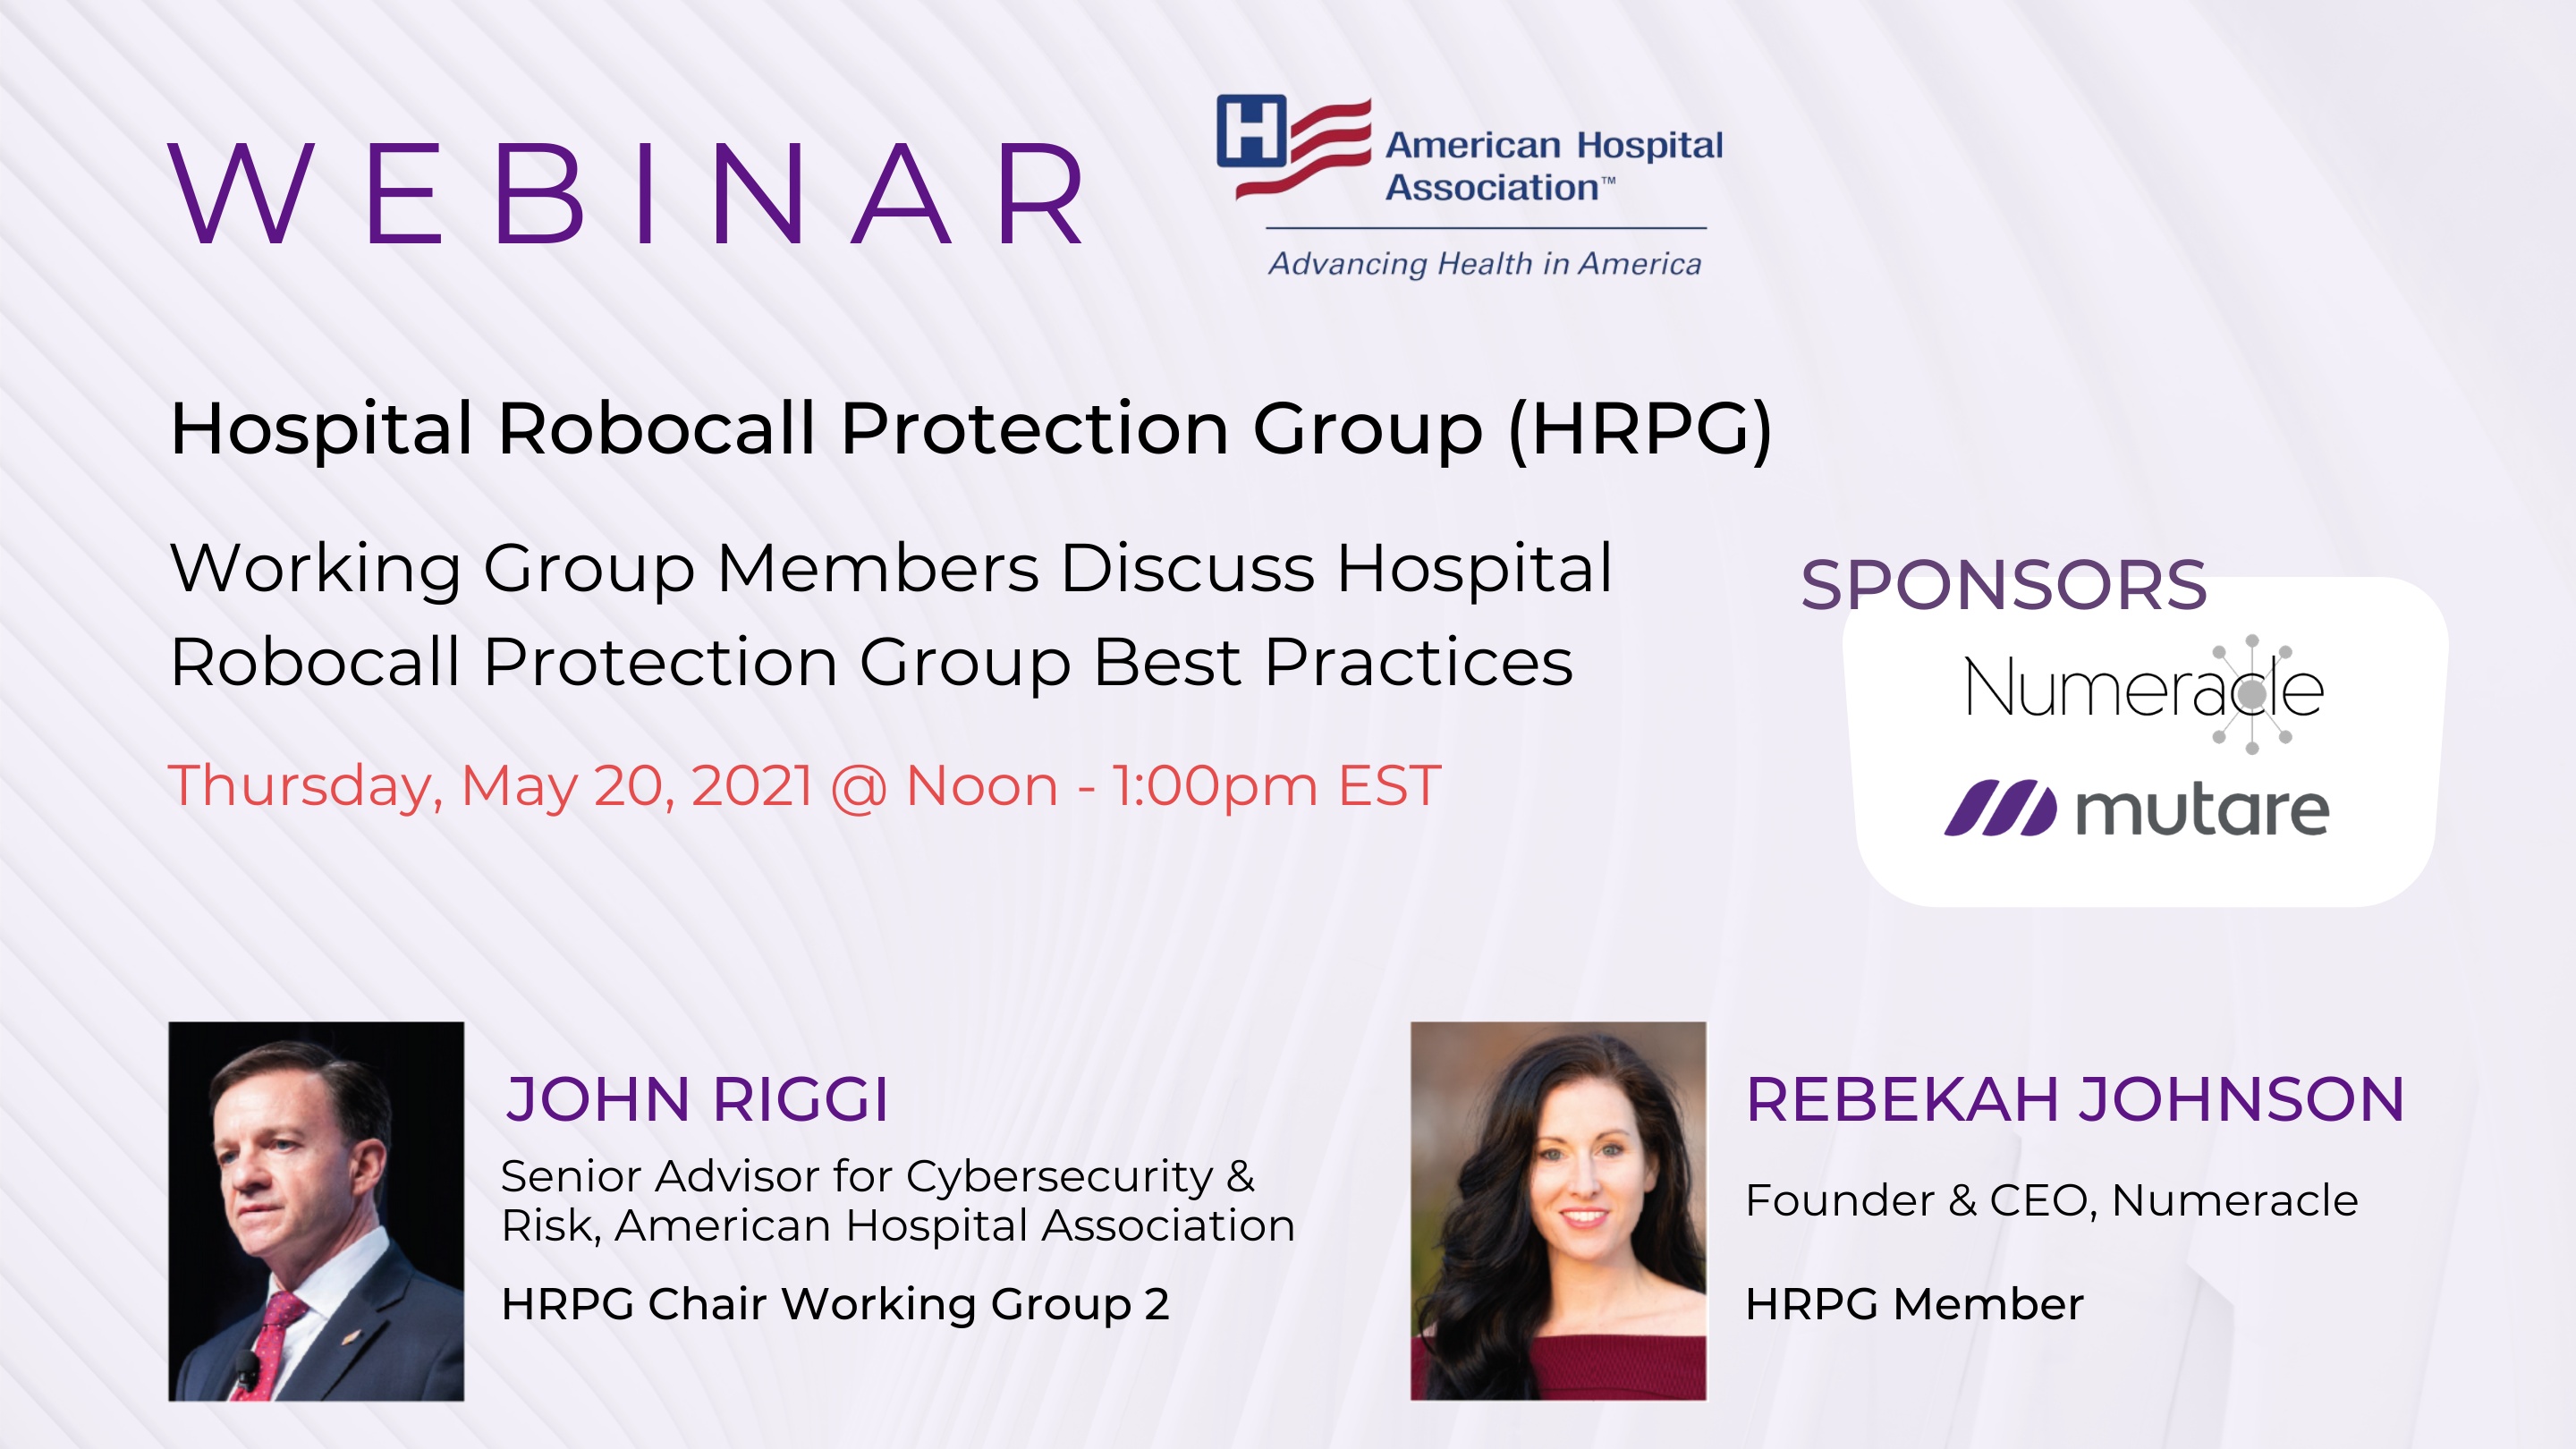 Working Group Members Discuss Hospital Robocall Protection Group (HRPG) Best Practices